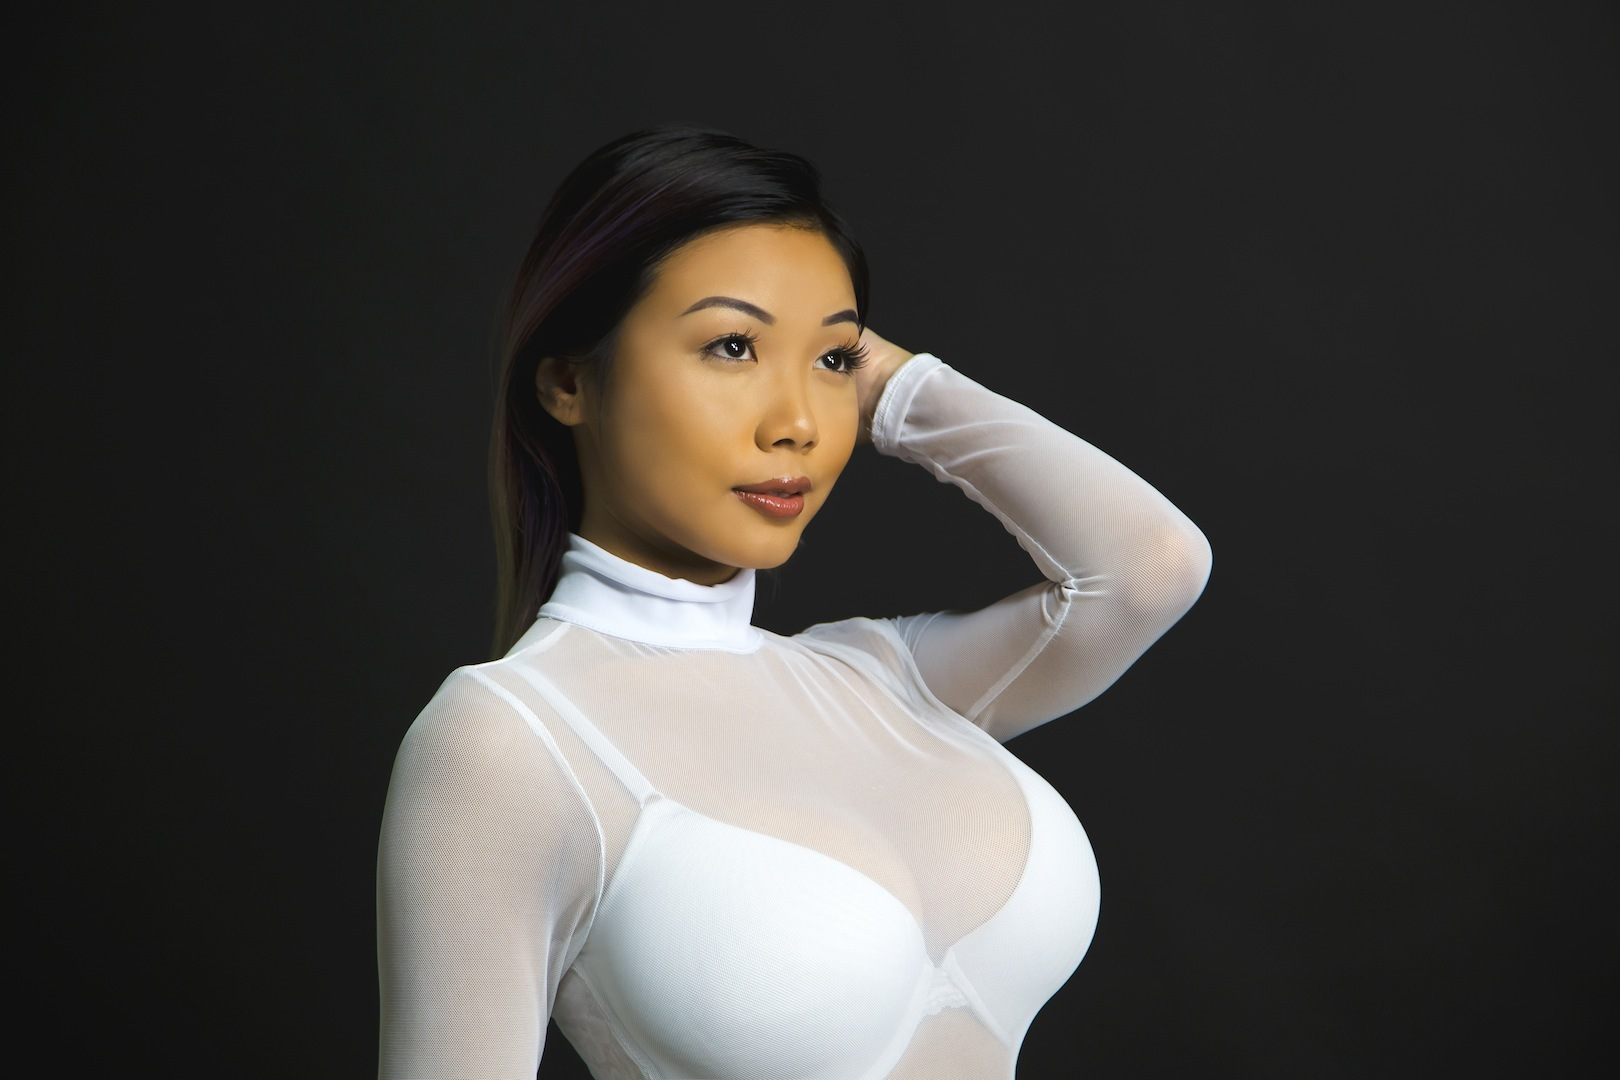 ASIAN MODEL IN WHITE SEE THROUGH BLOUSE